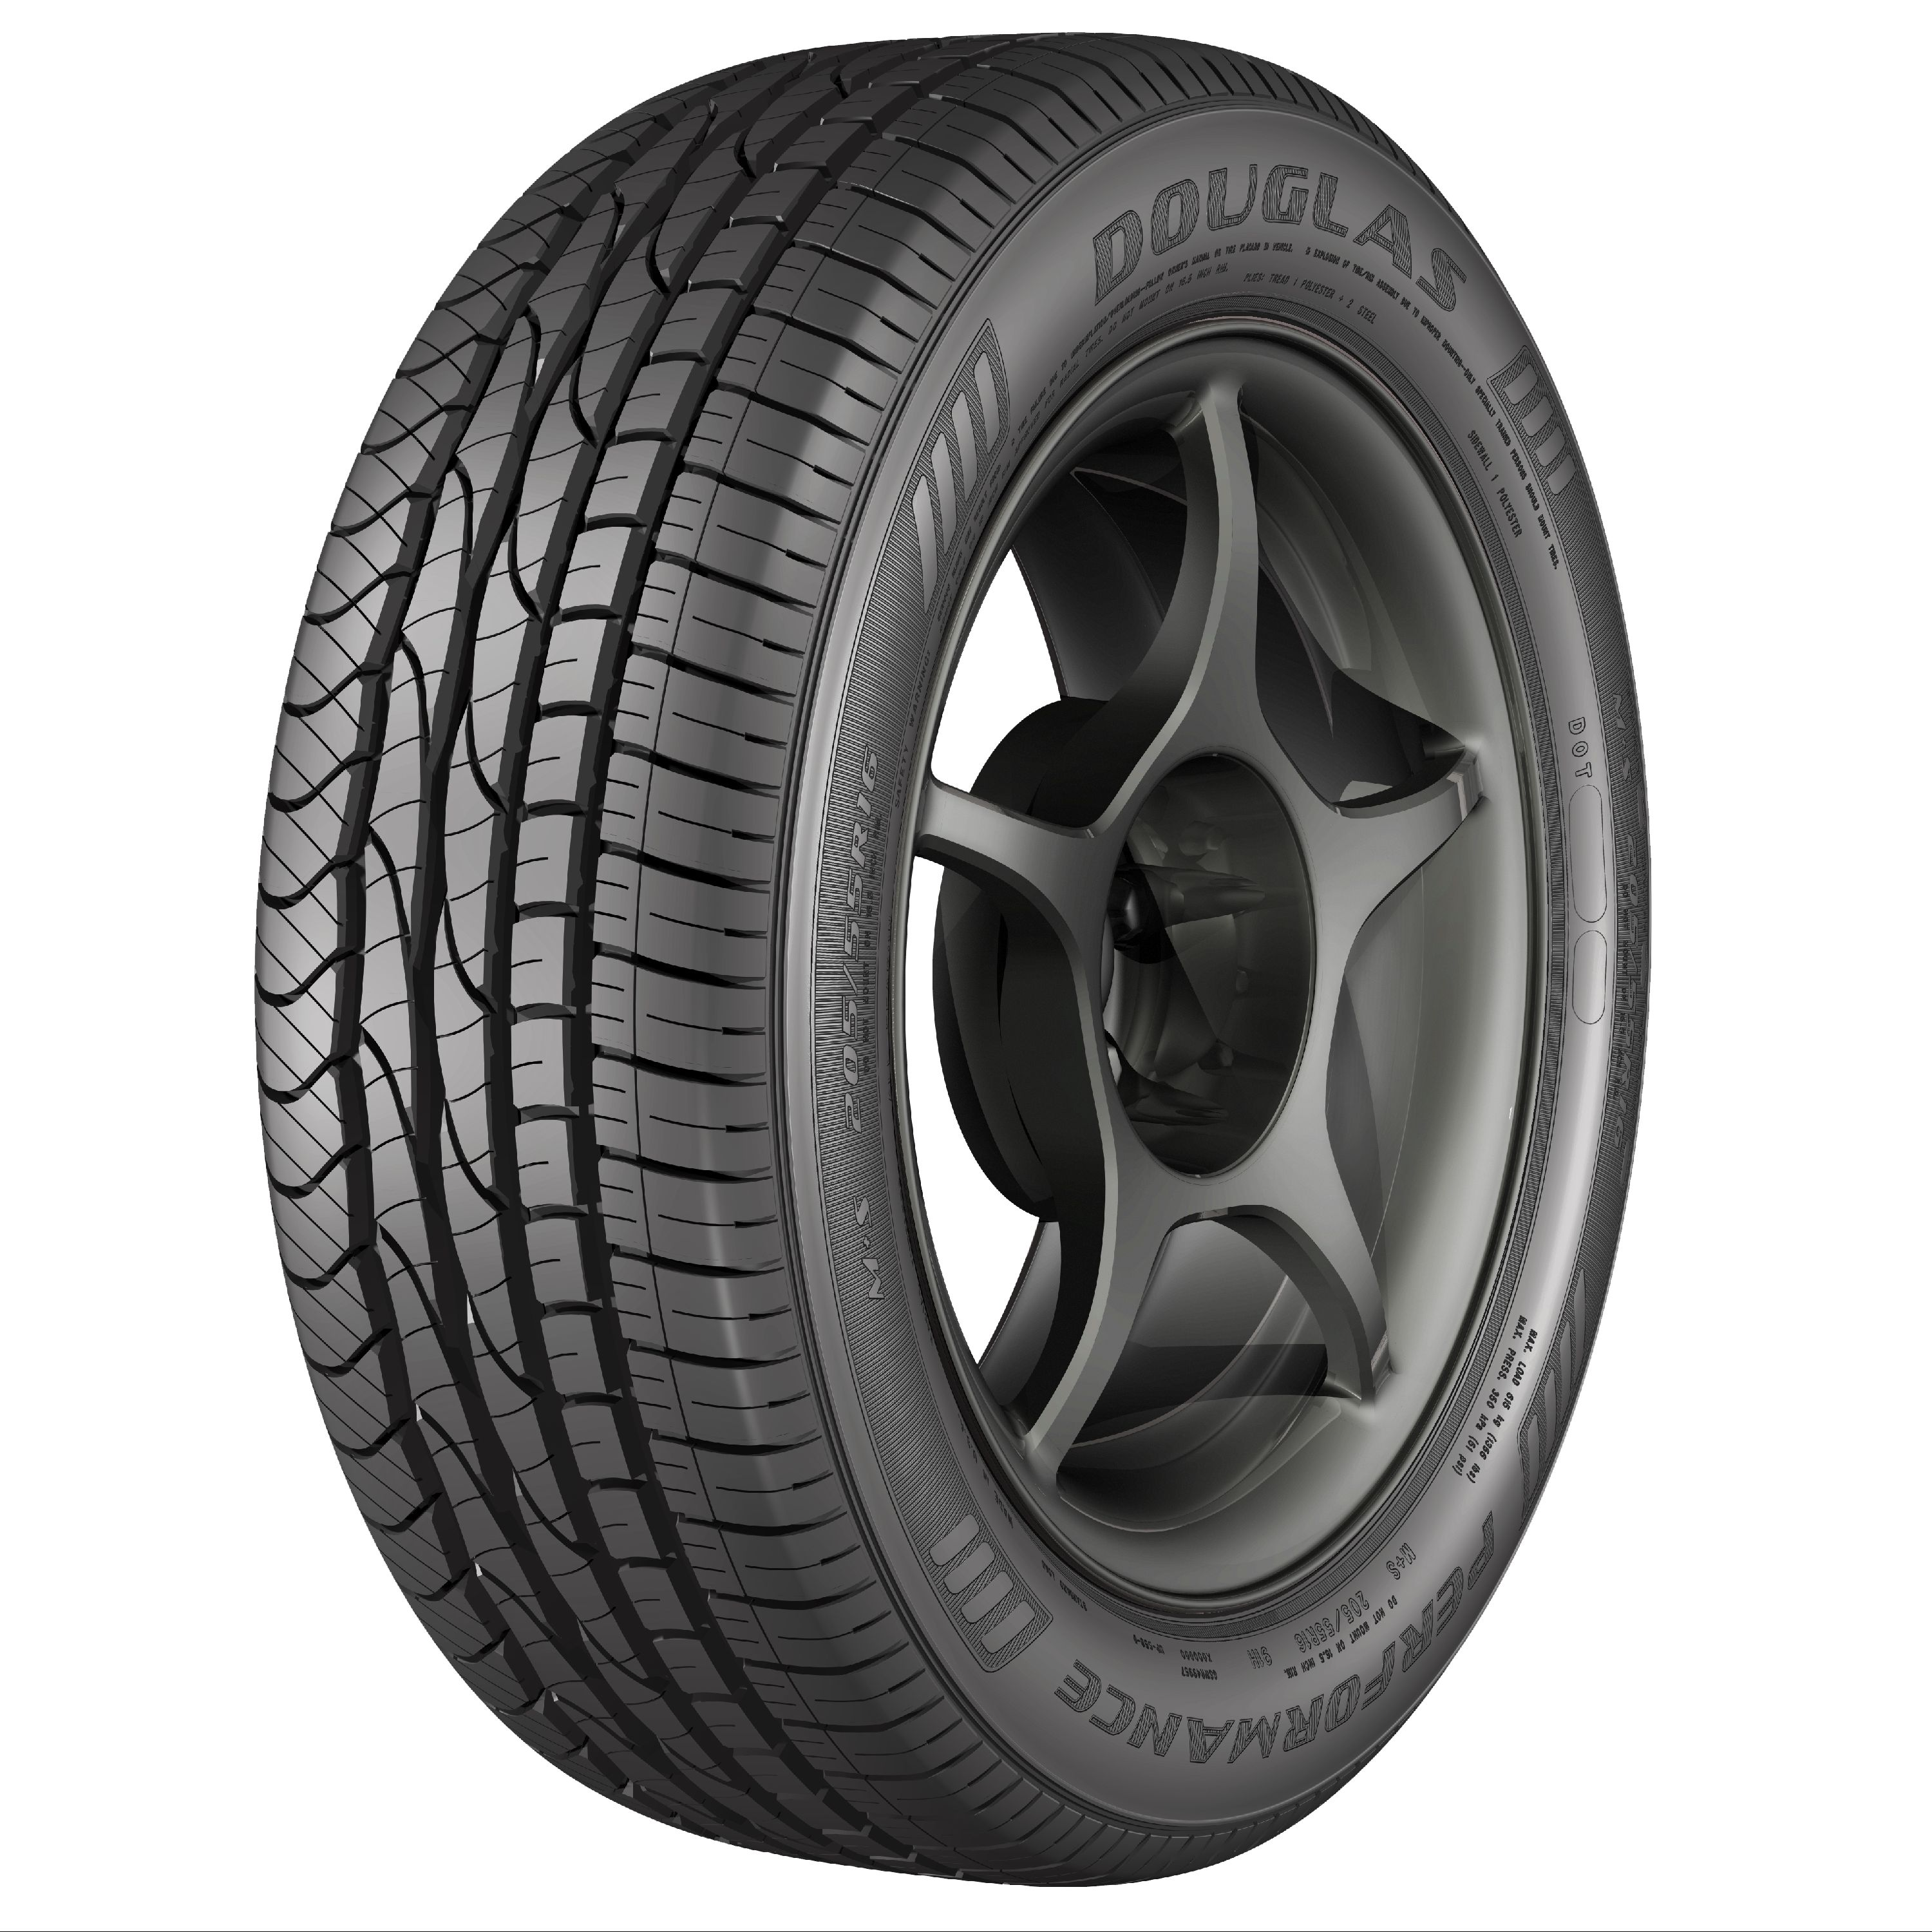 Douglas Performance Tire 205/60R16 92H SL